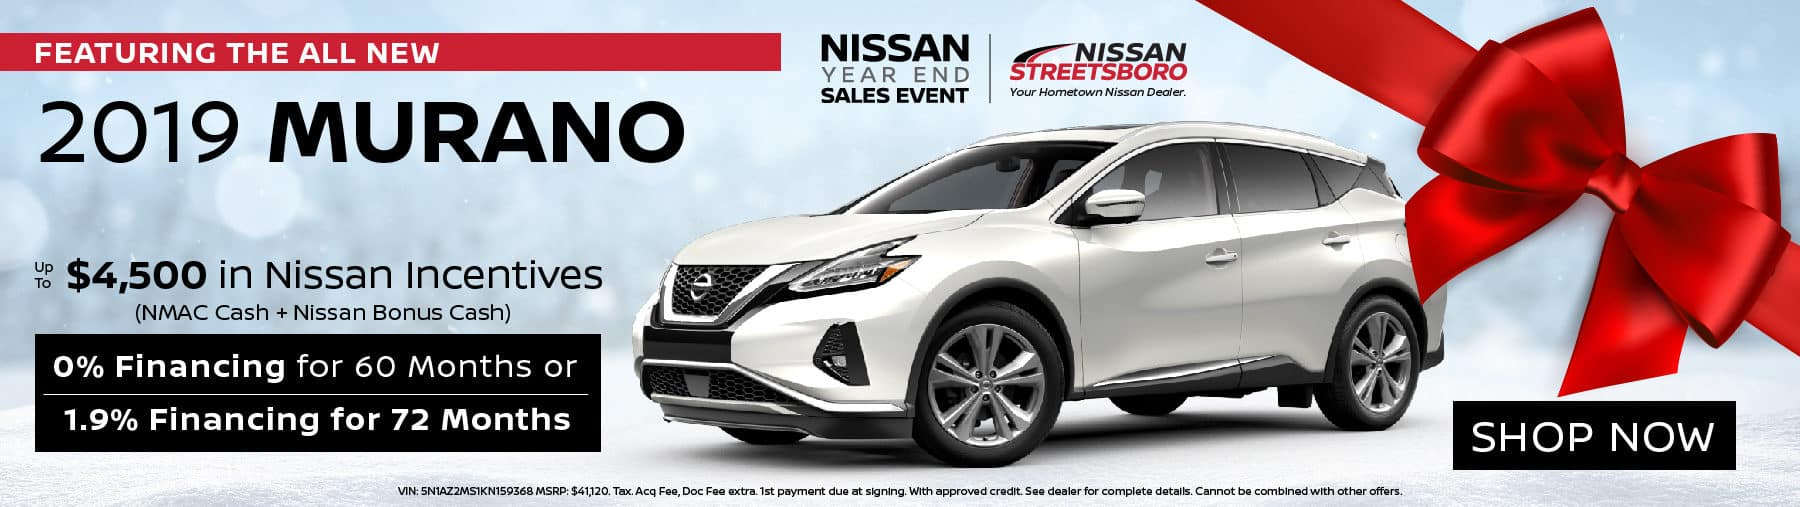 2019 Nissan Murano Incentives